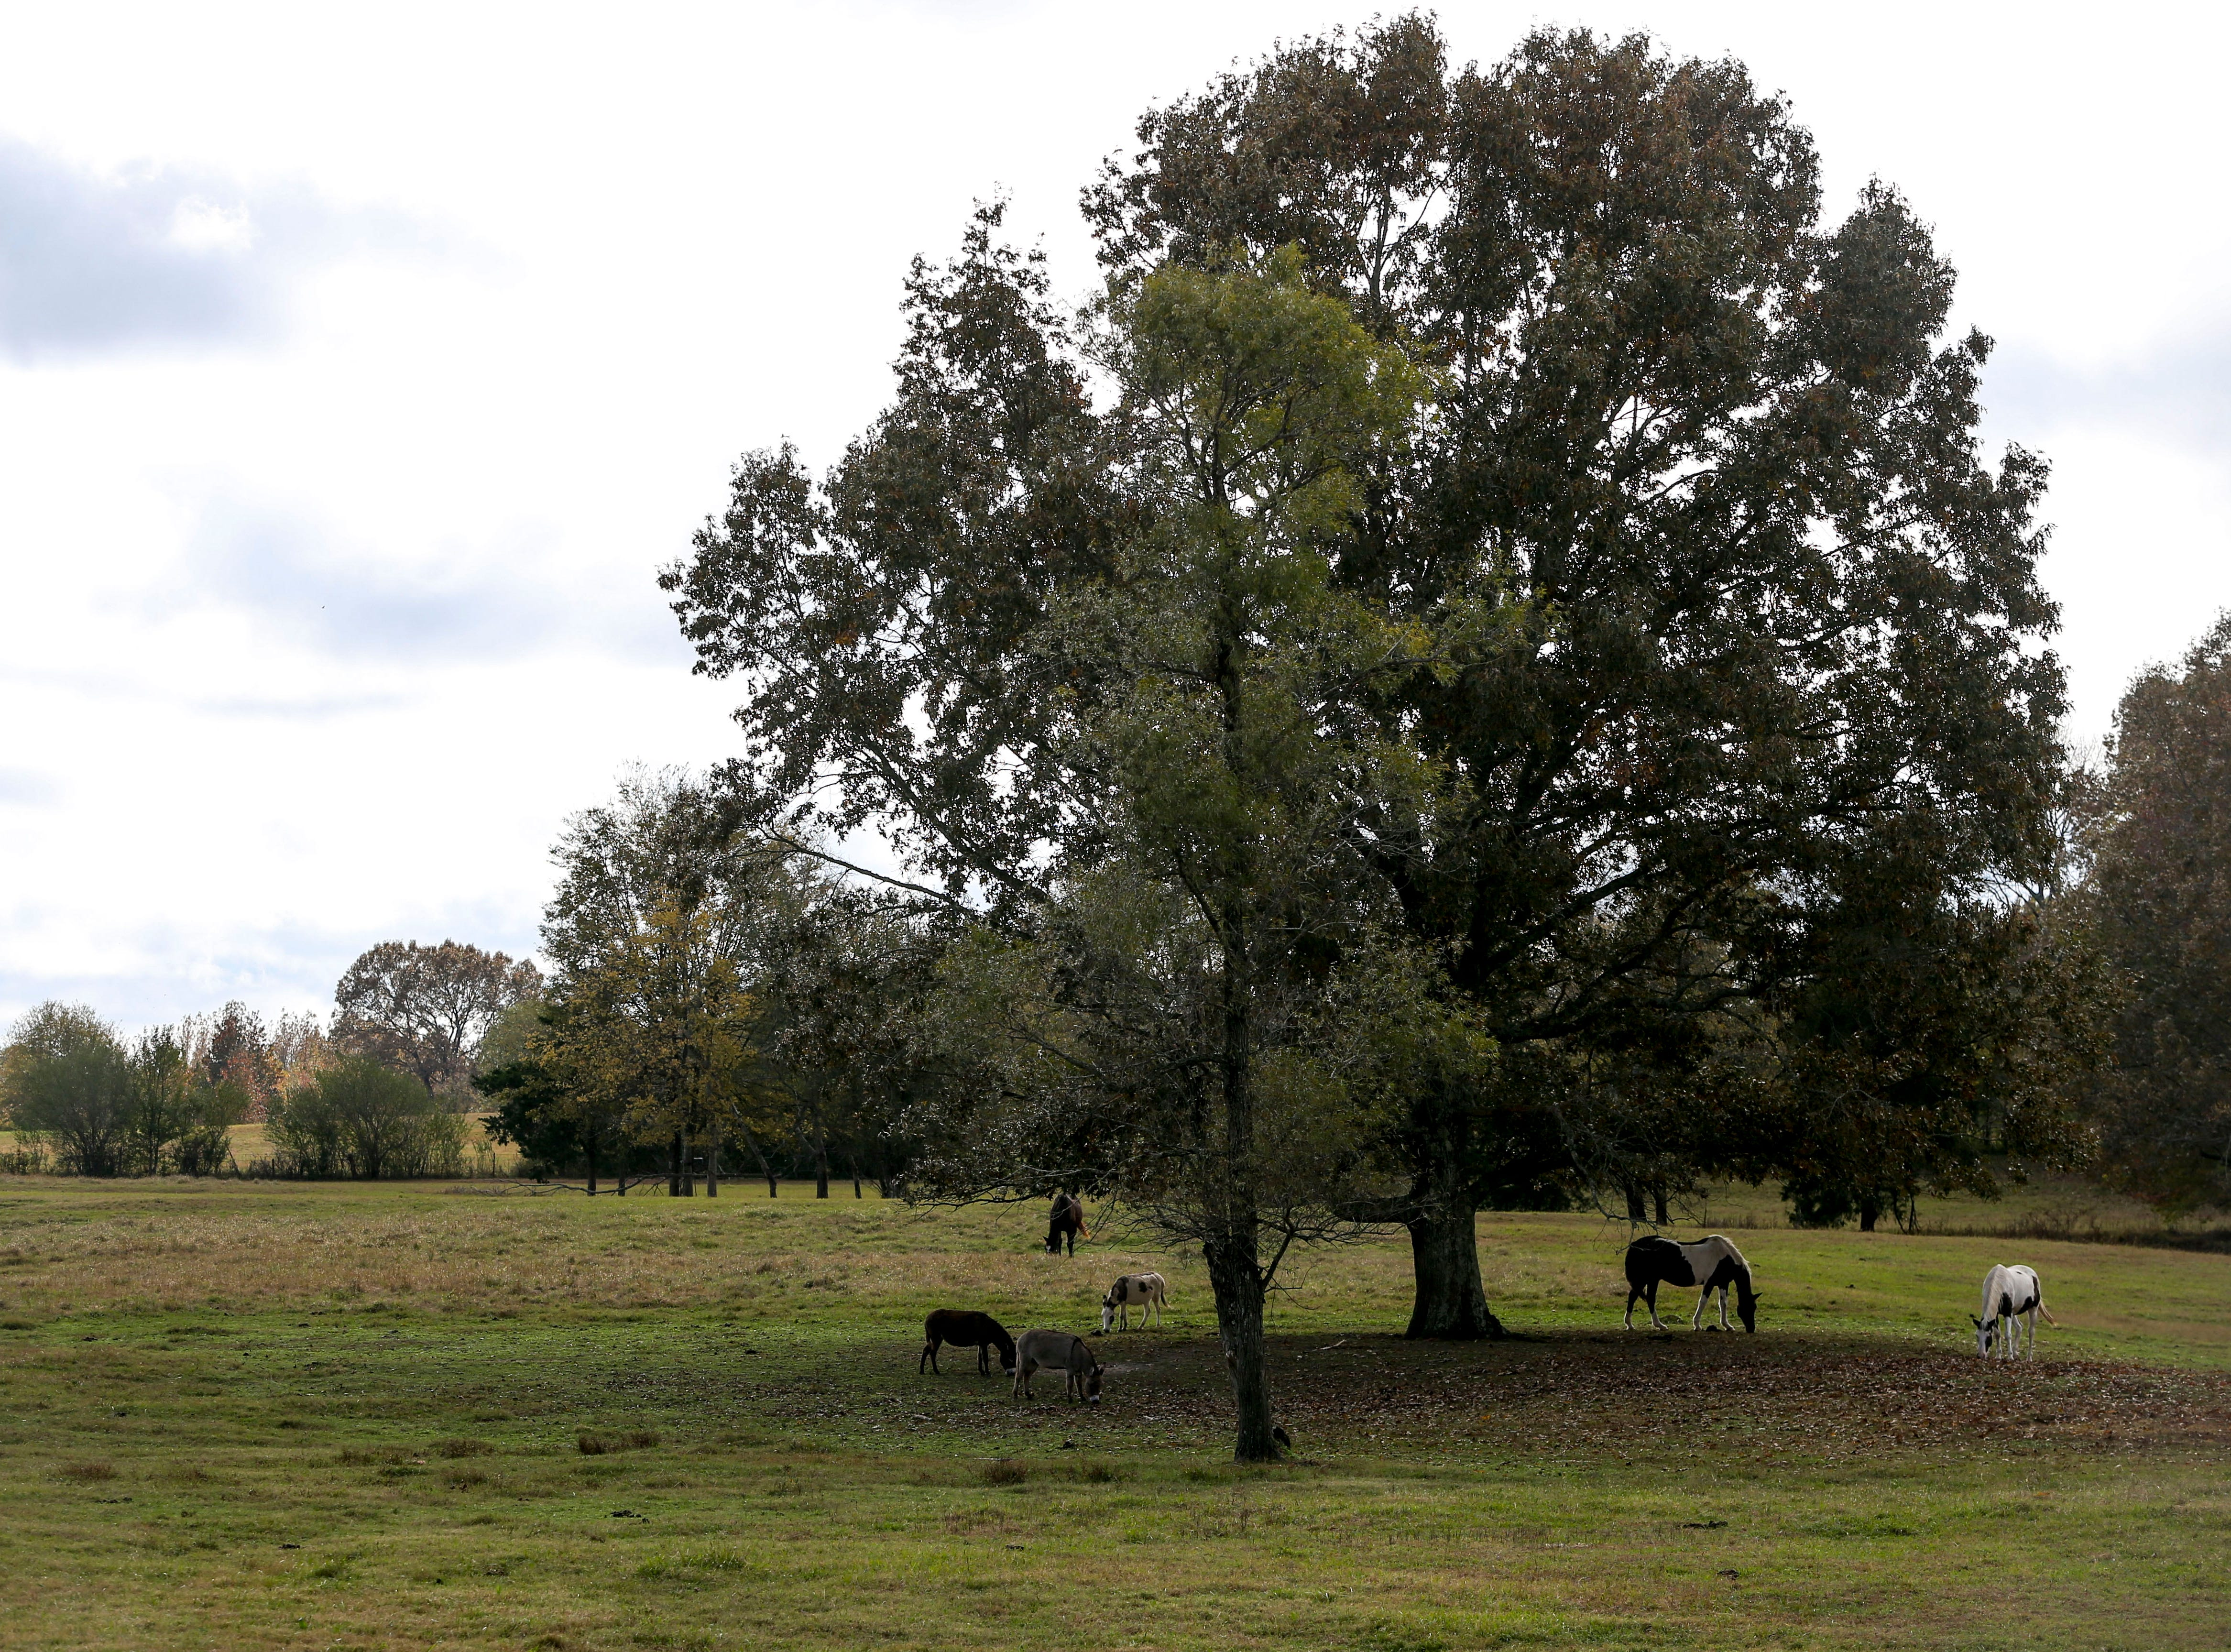 Horses, donkey, and cows roam an open pasture behind the living quarters at Stillwaters Farm in Henderson, Tenn., on Monday, Nov. 5, 2018.